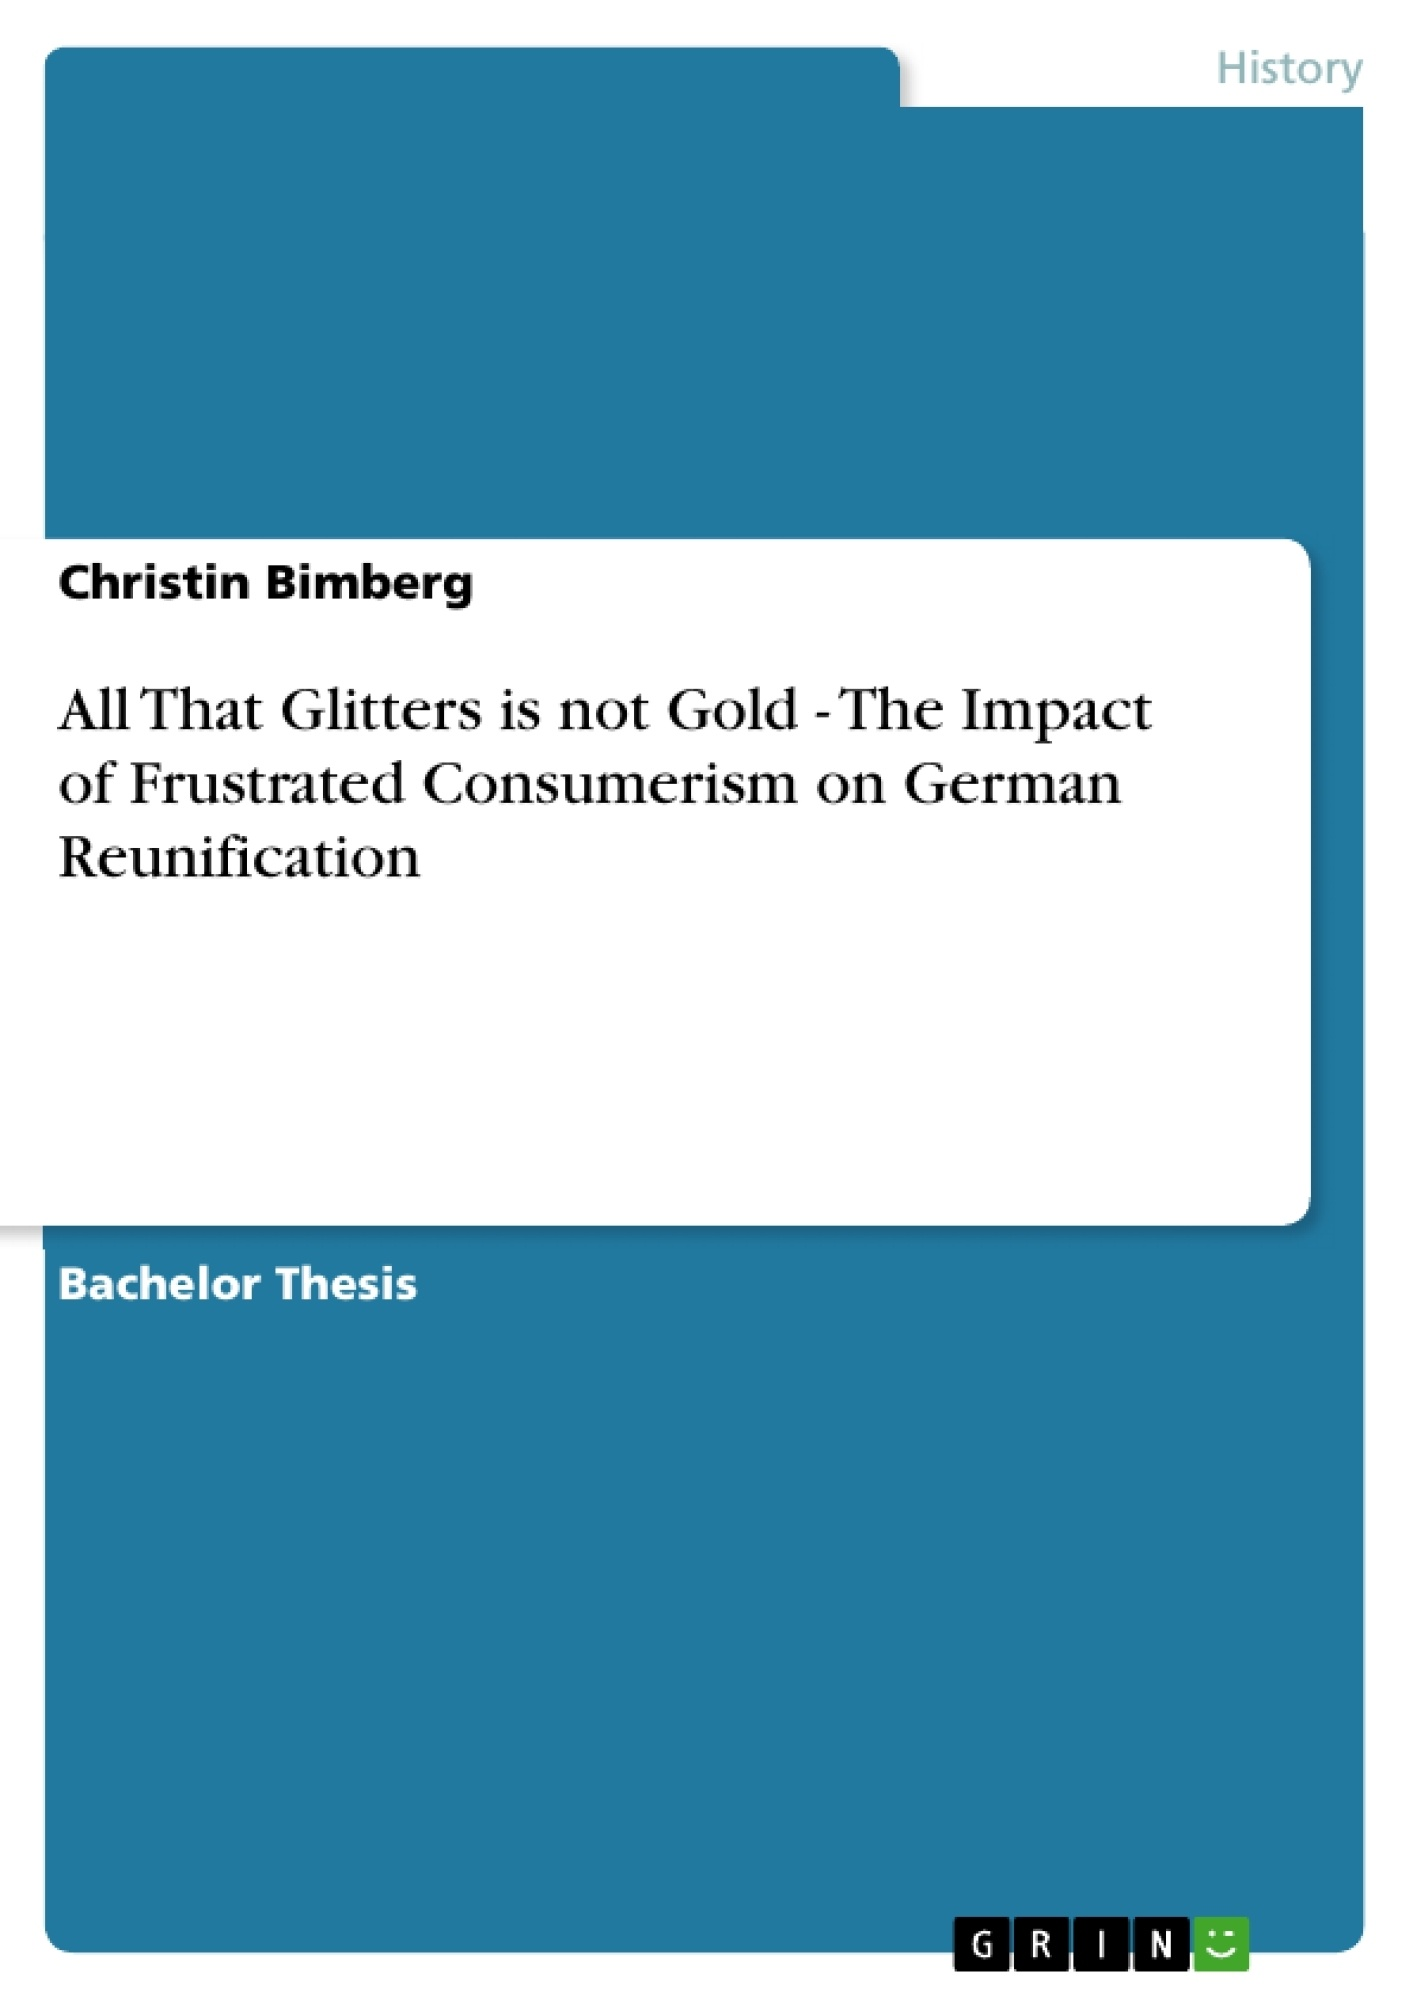 Title: All That Glitters is not Gold - The Impact of Frustrated Consumerism on German Reunification